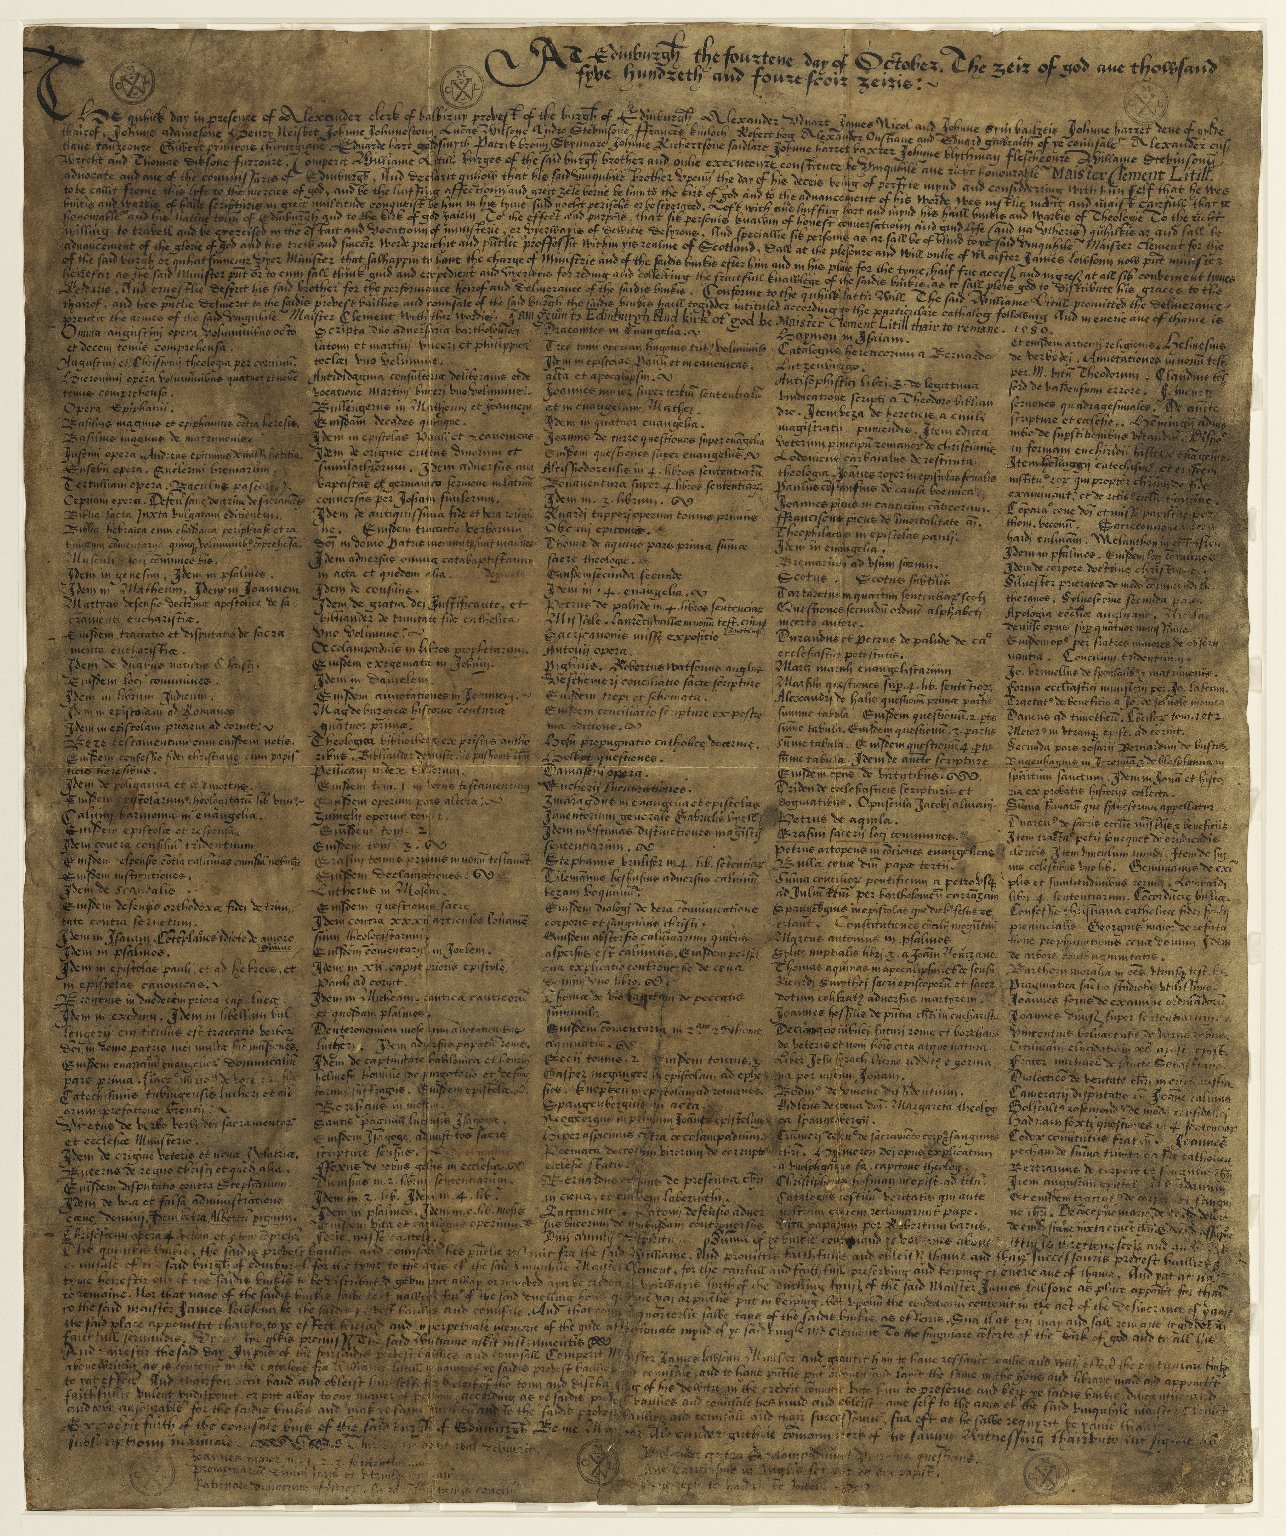 Clement Litil's Bequest Charter